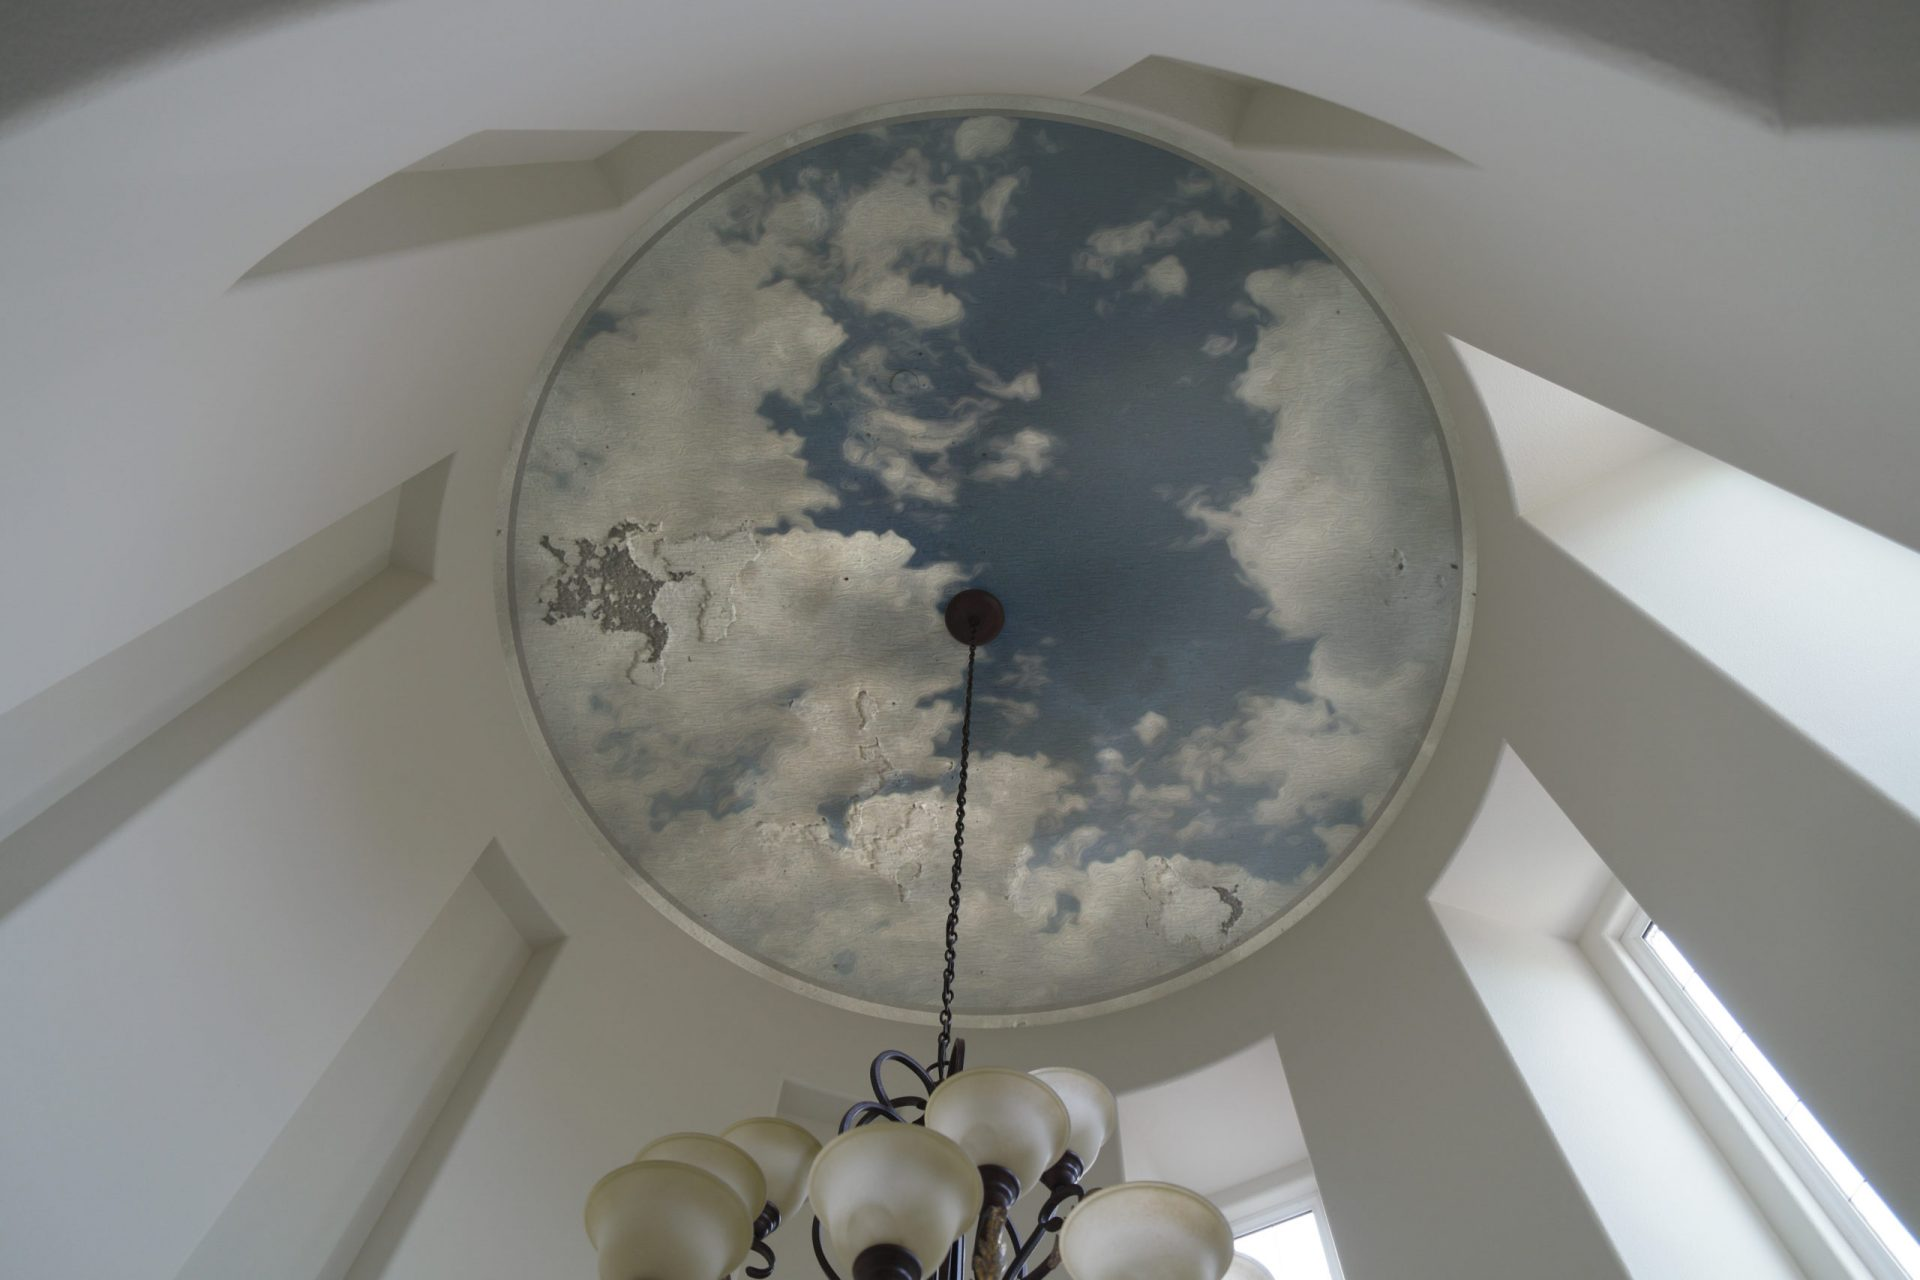 0000_david_latif_entry_foye_ceiling_001